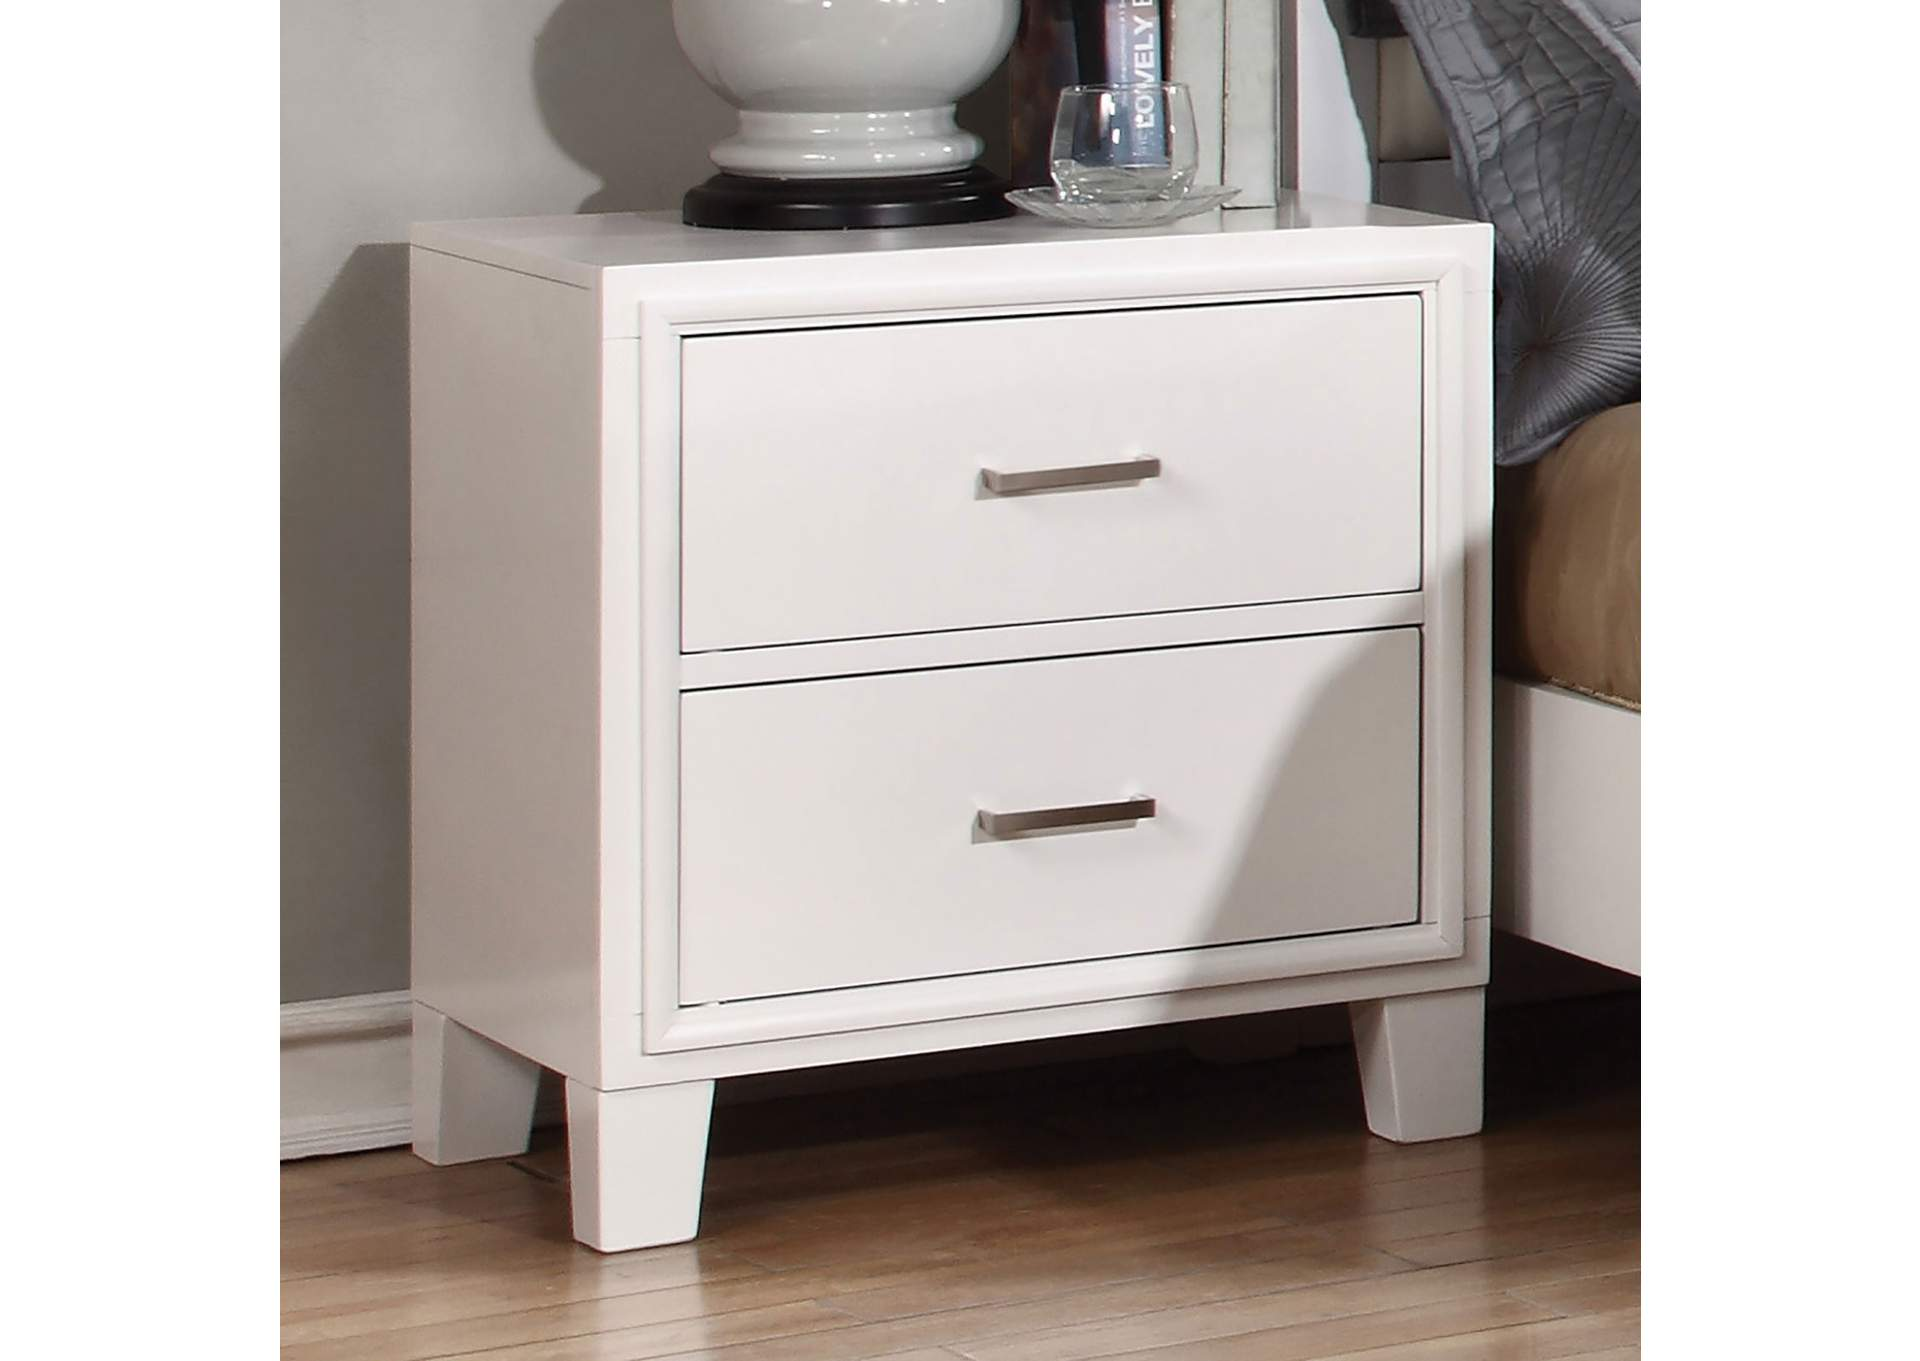 Furniture ville bronx ny enrico i white nightstand for Furniture ville